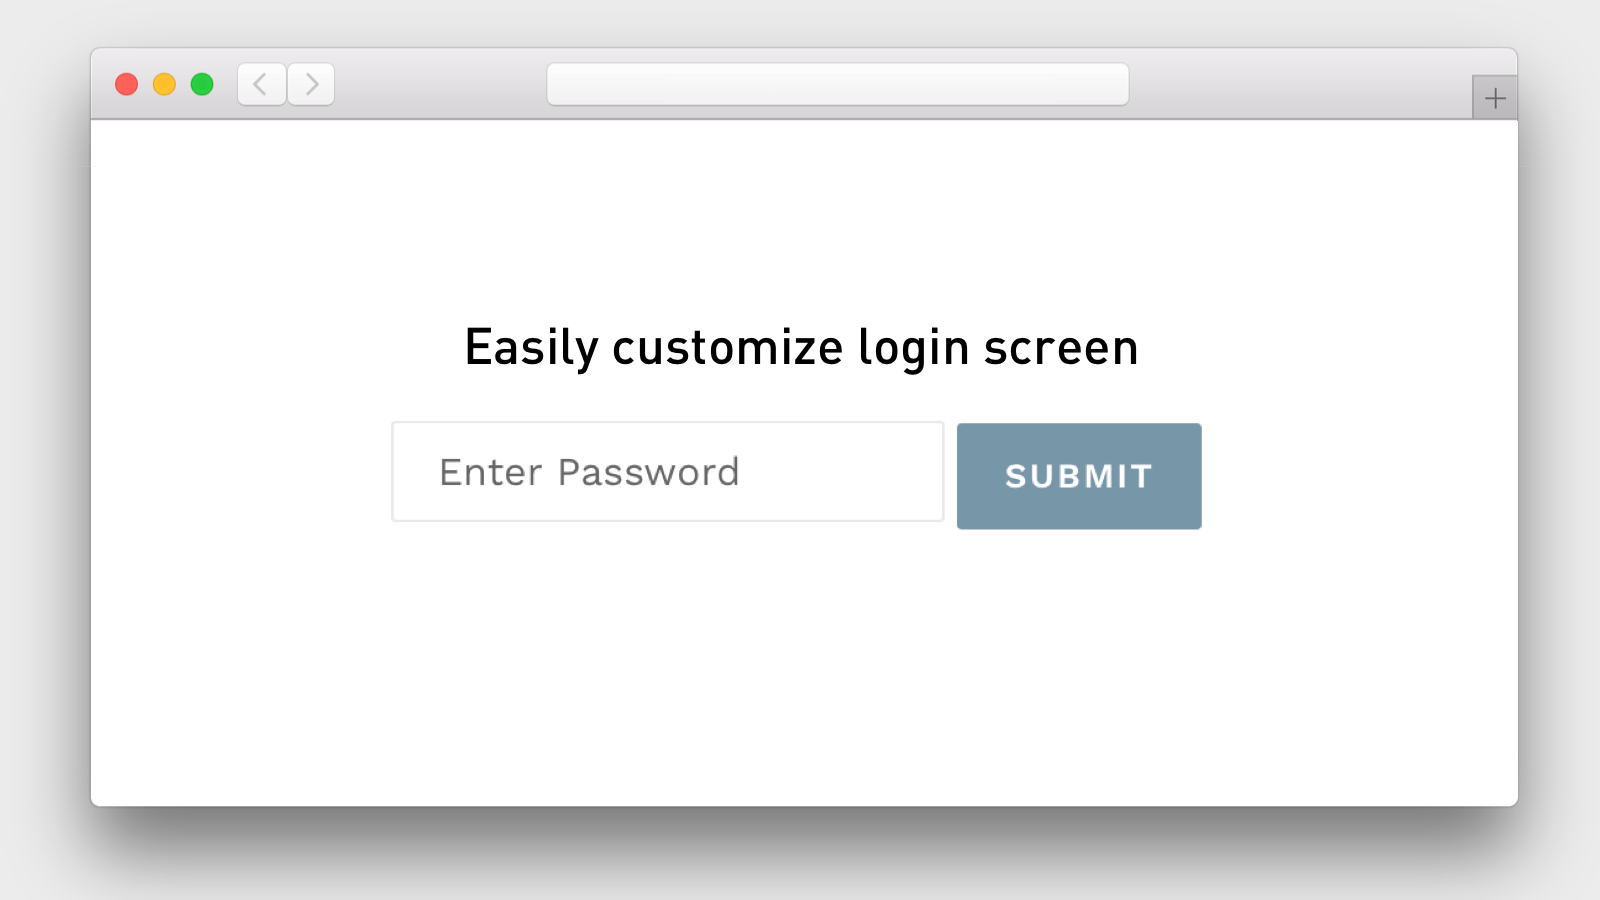 Simple password protection